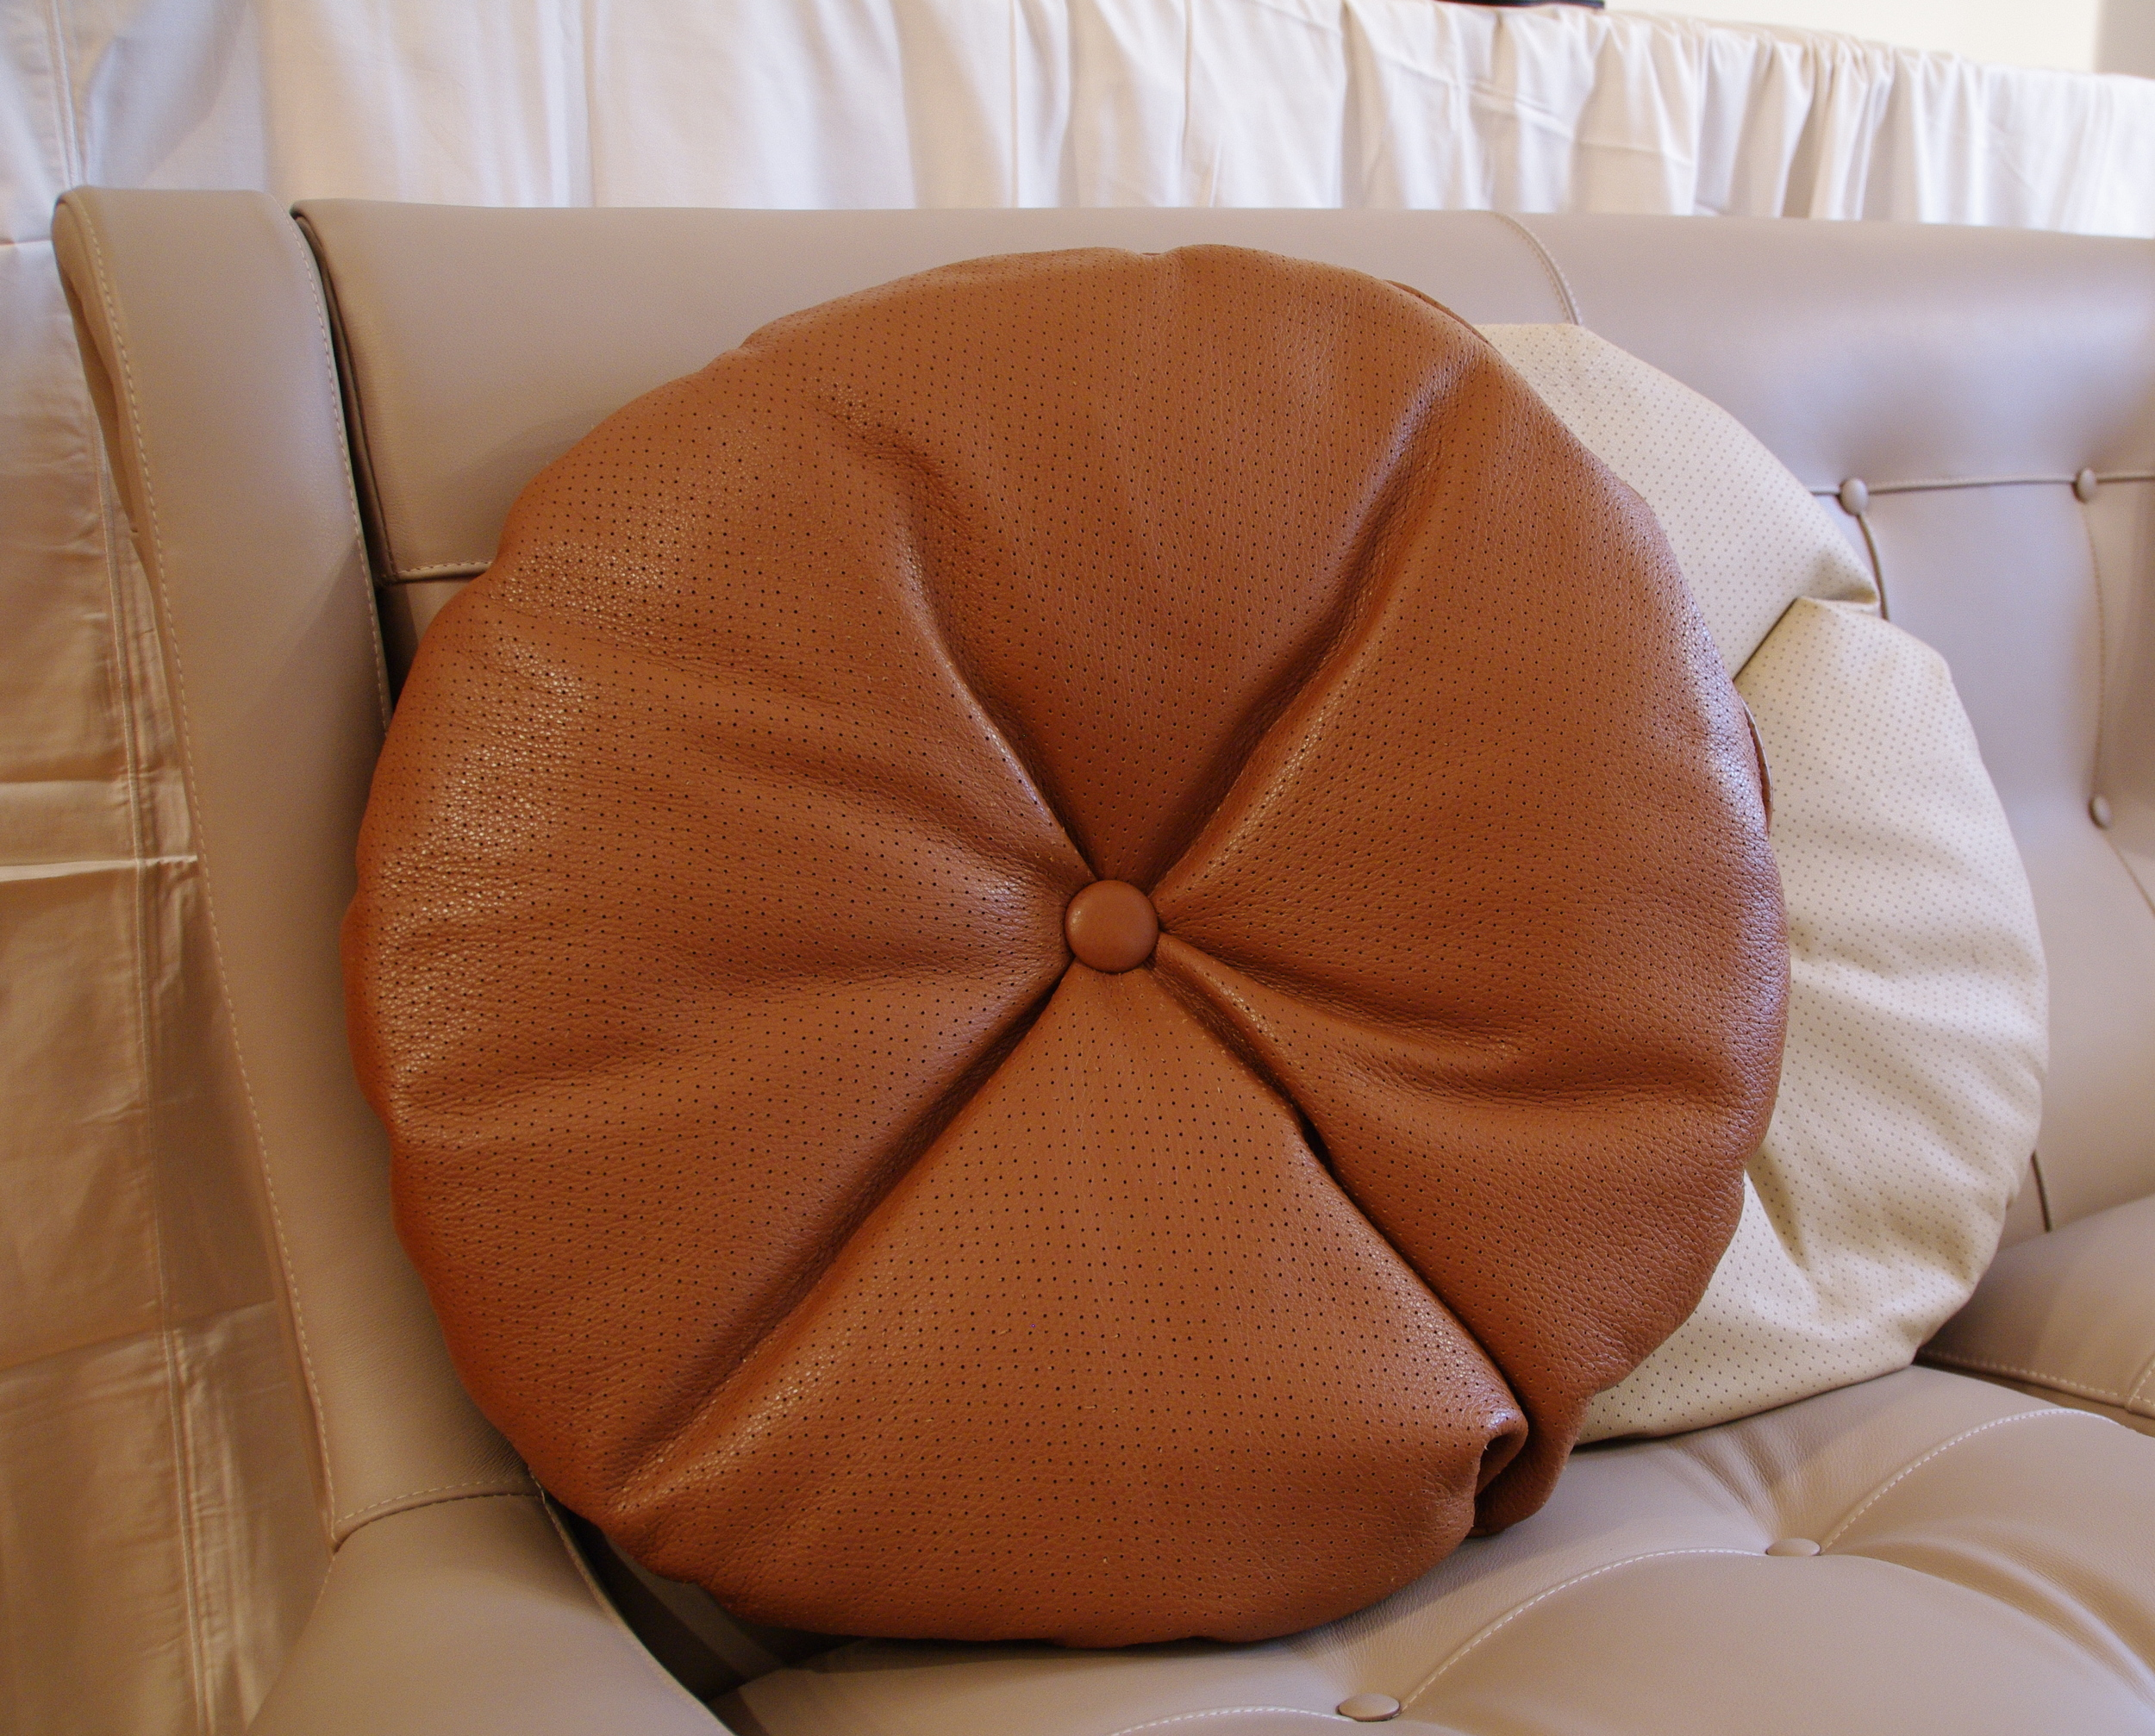 Perforated Leather Large Round Pillow With Button Arflex Italy Mid Century Modern Italian Design Mid Century Italian Furniture